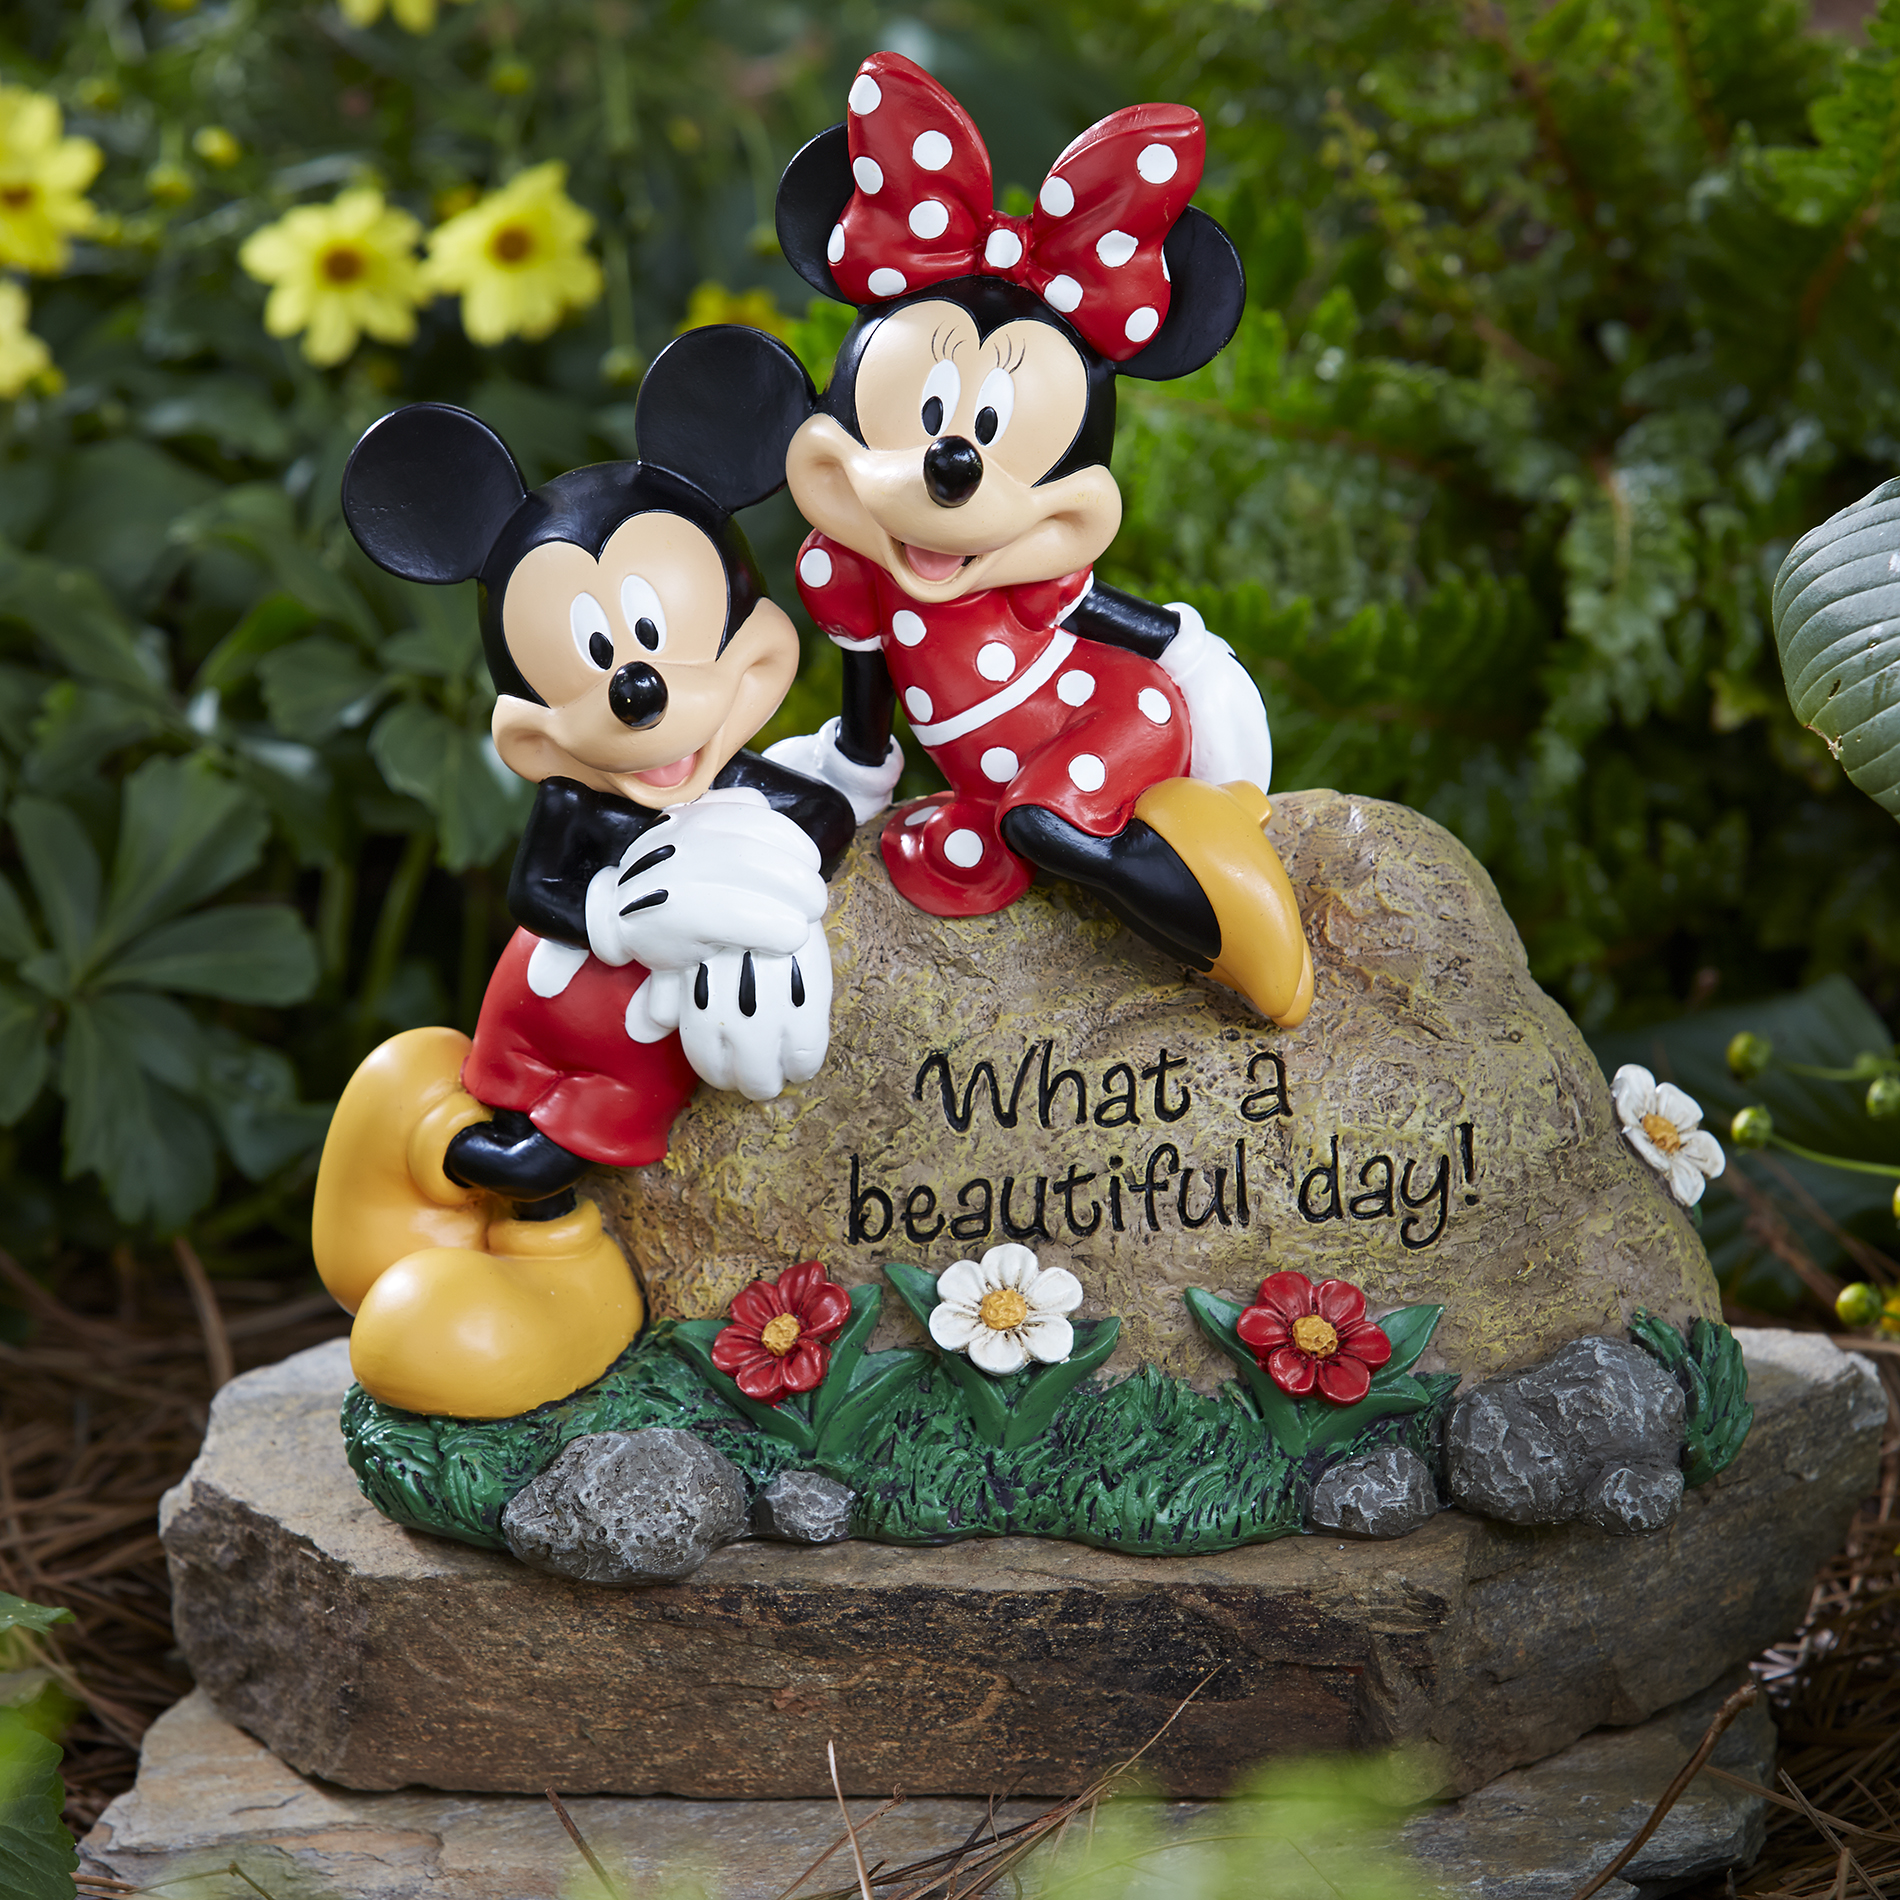 Welcome Statues Garden Disney Garden Rock Mickey And Minnie Limited Availability